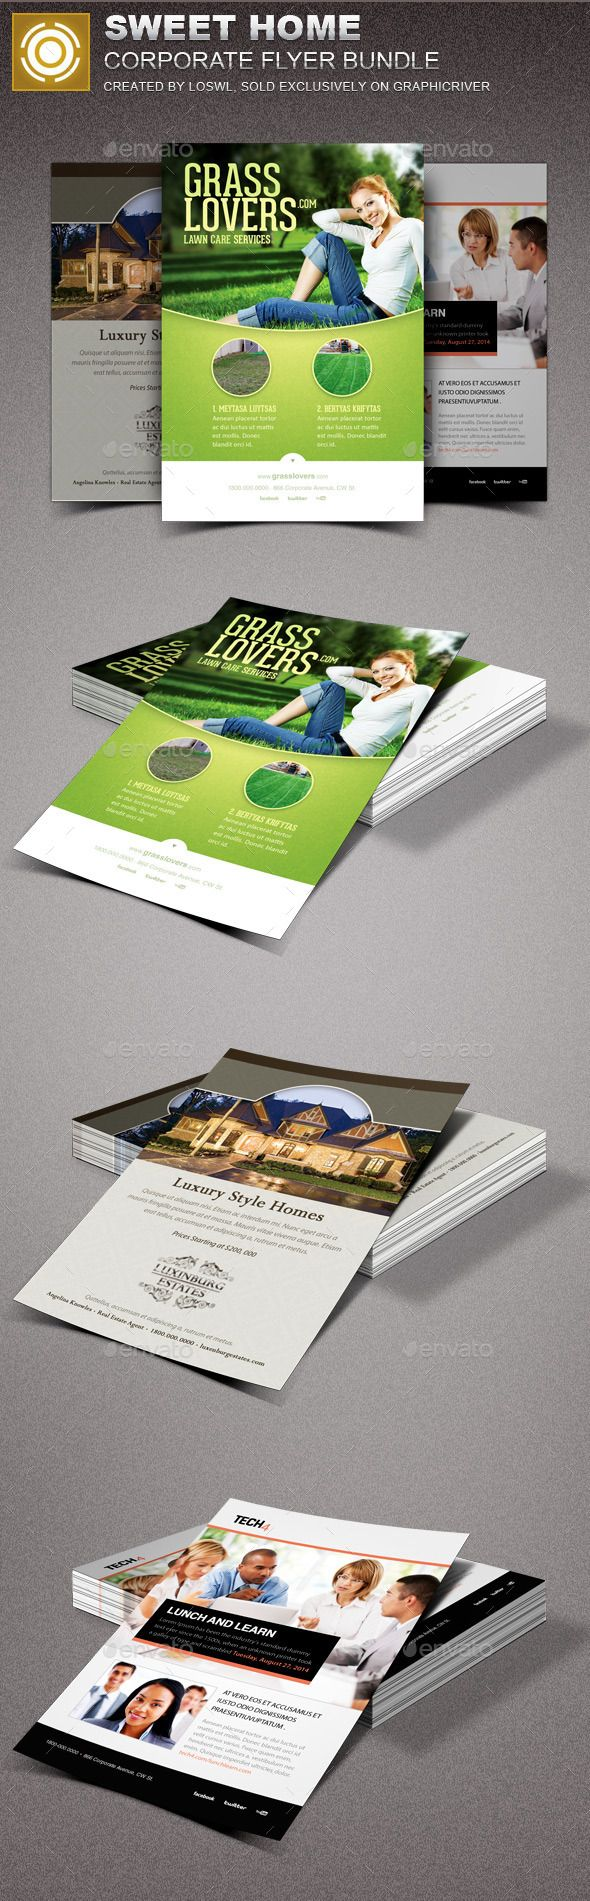 Sweet Home Corporate Flyer Bundle | Pinterest | Flyer template, Real ...